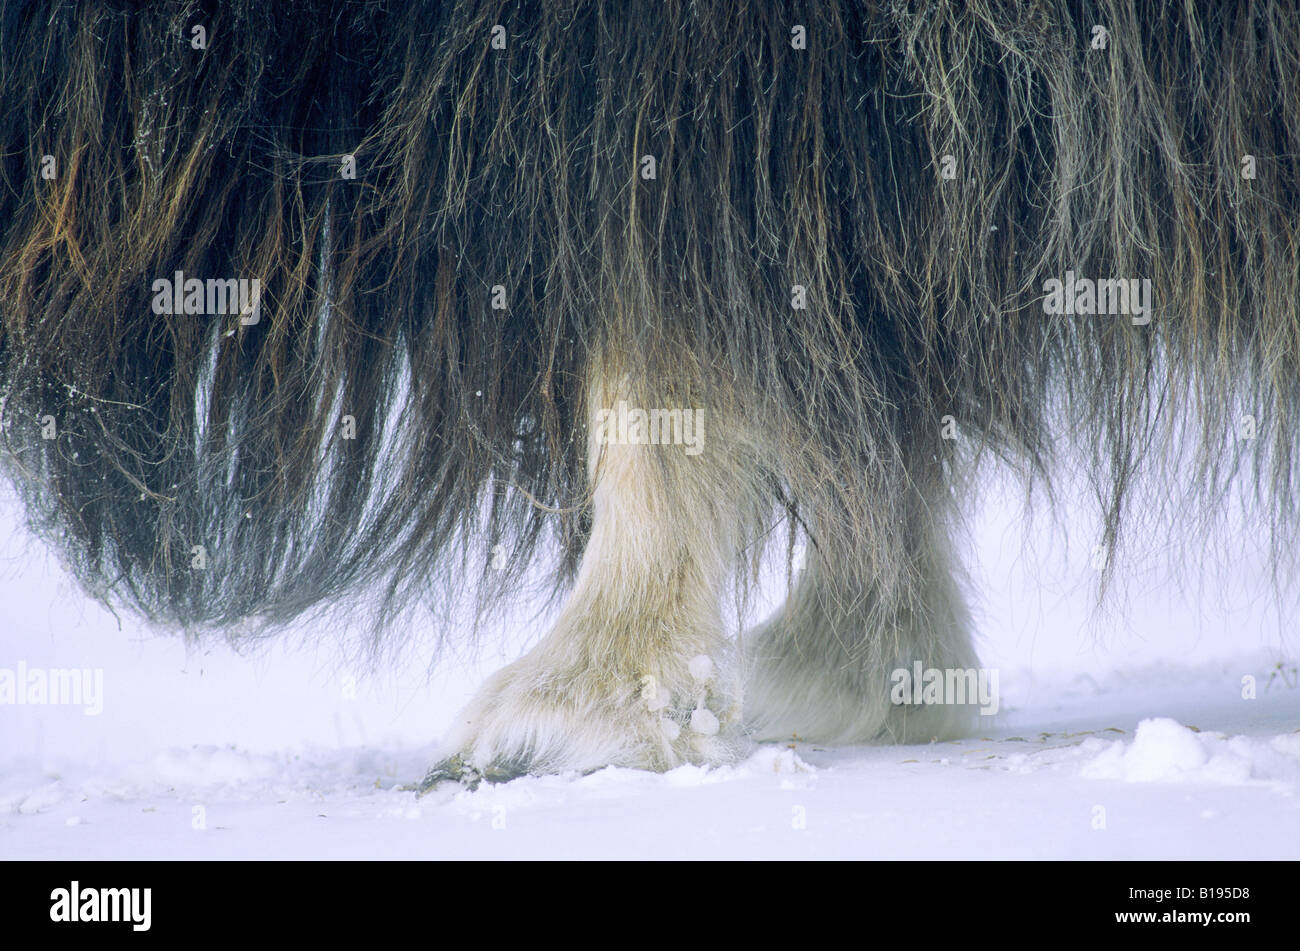 Long guard hairs on an adult muskox (Ovibos moschatus).  Banks Island, Northwest Territories, Arctic Canada. - Stock Image